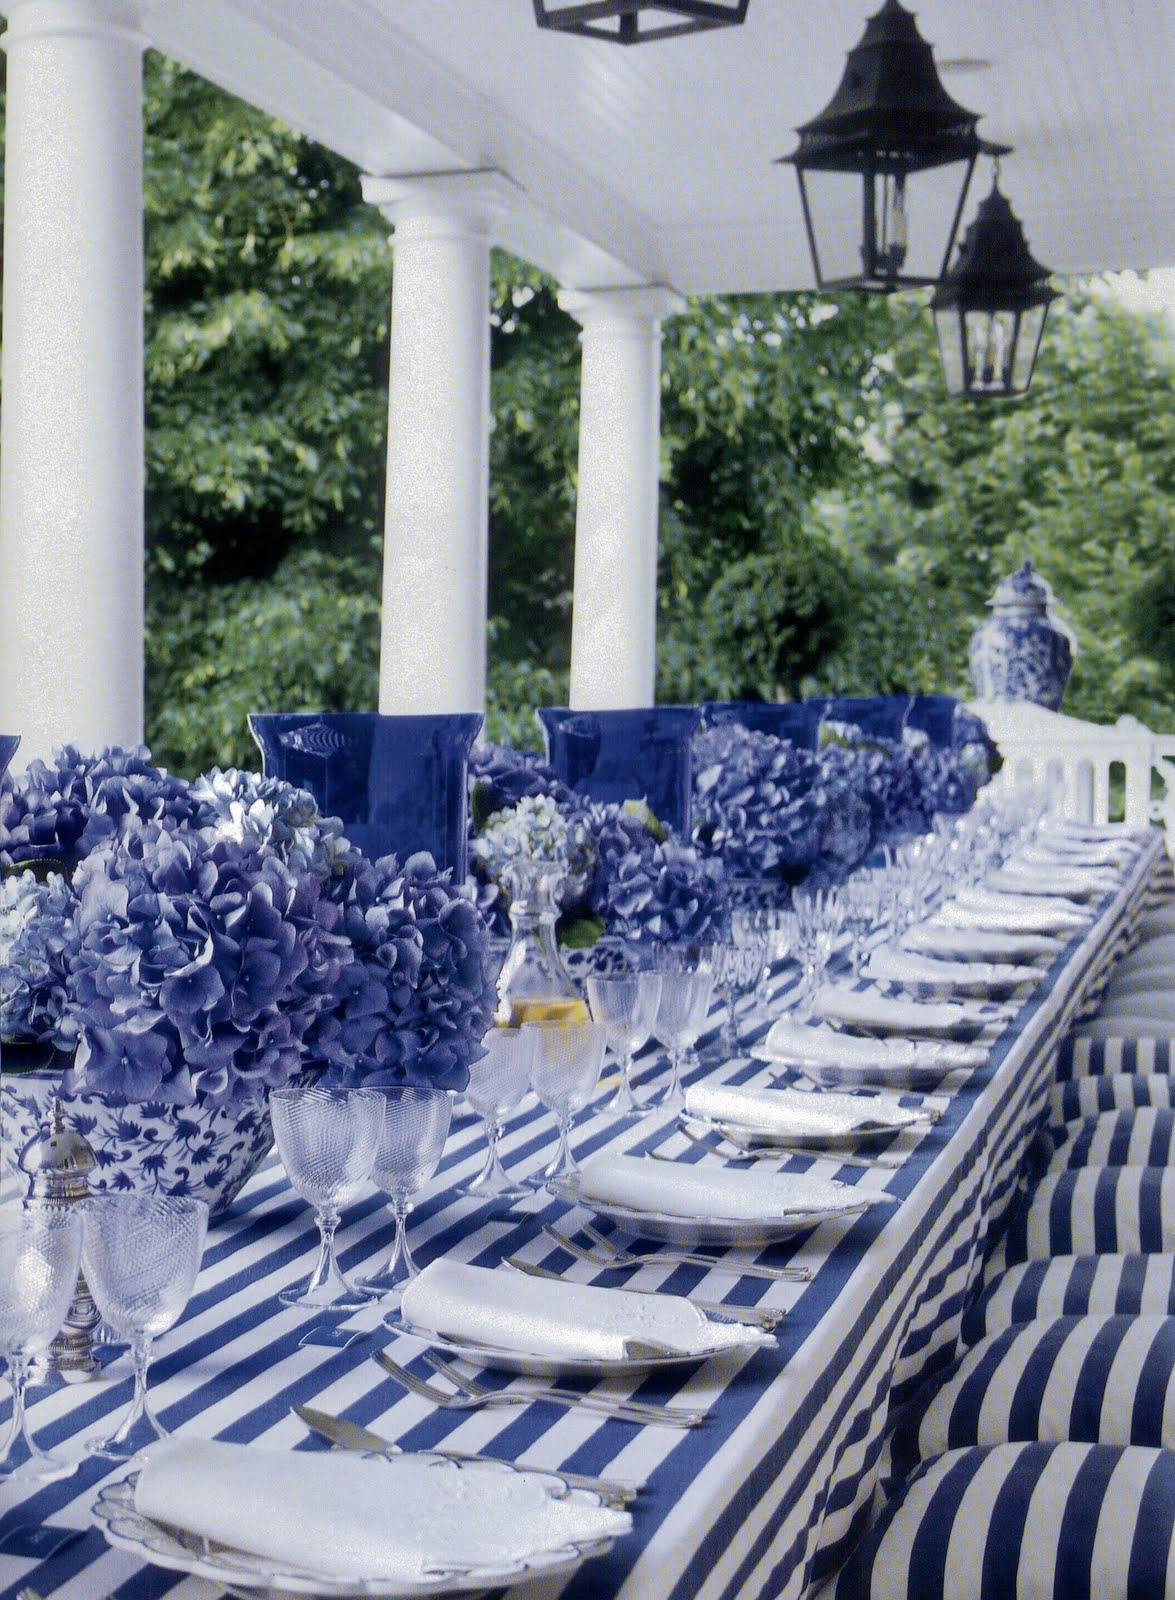 Decorating with Blue  White ft Carolyne Roehm  Old and New Designs